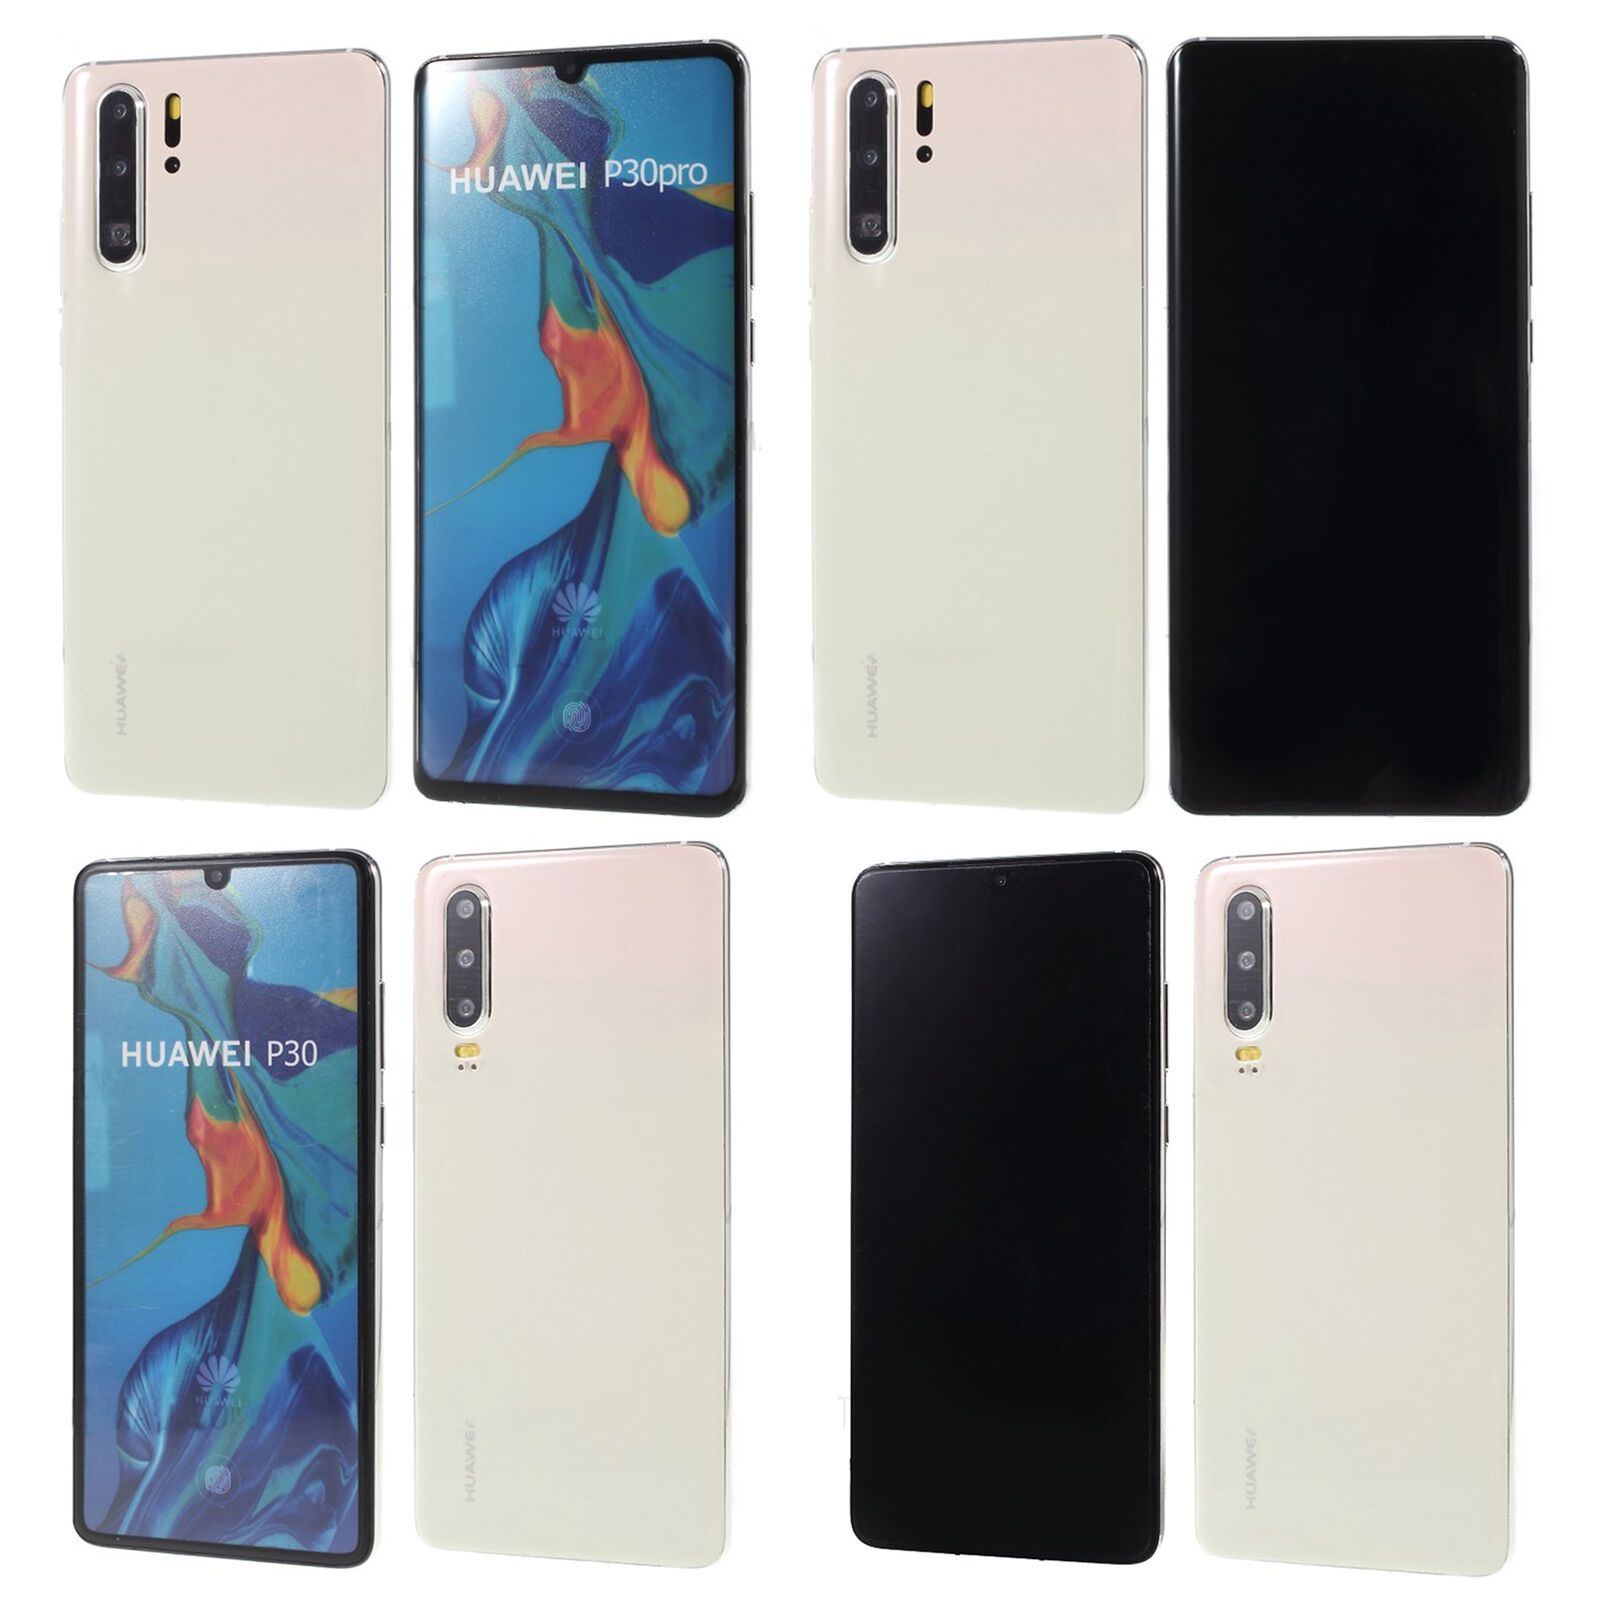 1:1 Non working Replica Fake Phone Dummy Display Model For Huawei P30 Pro white